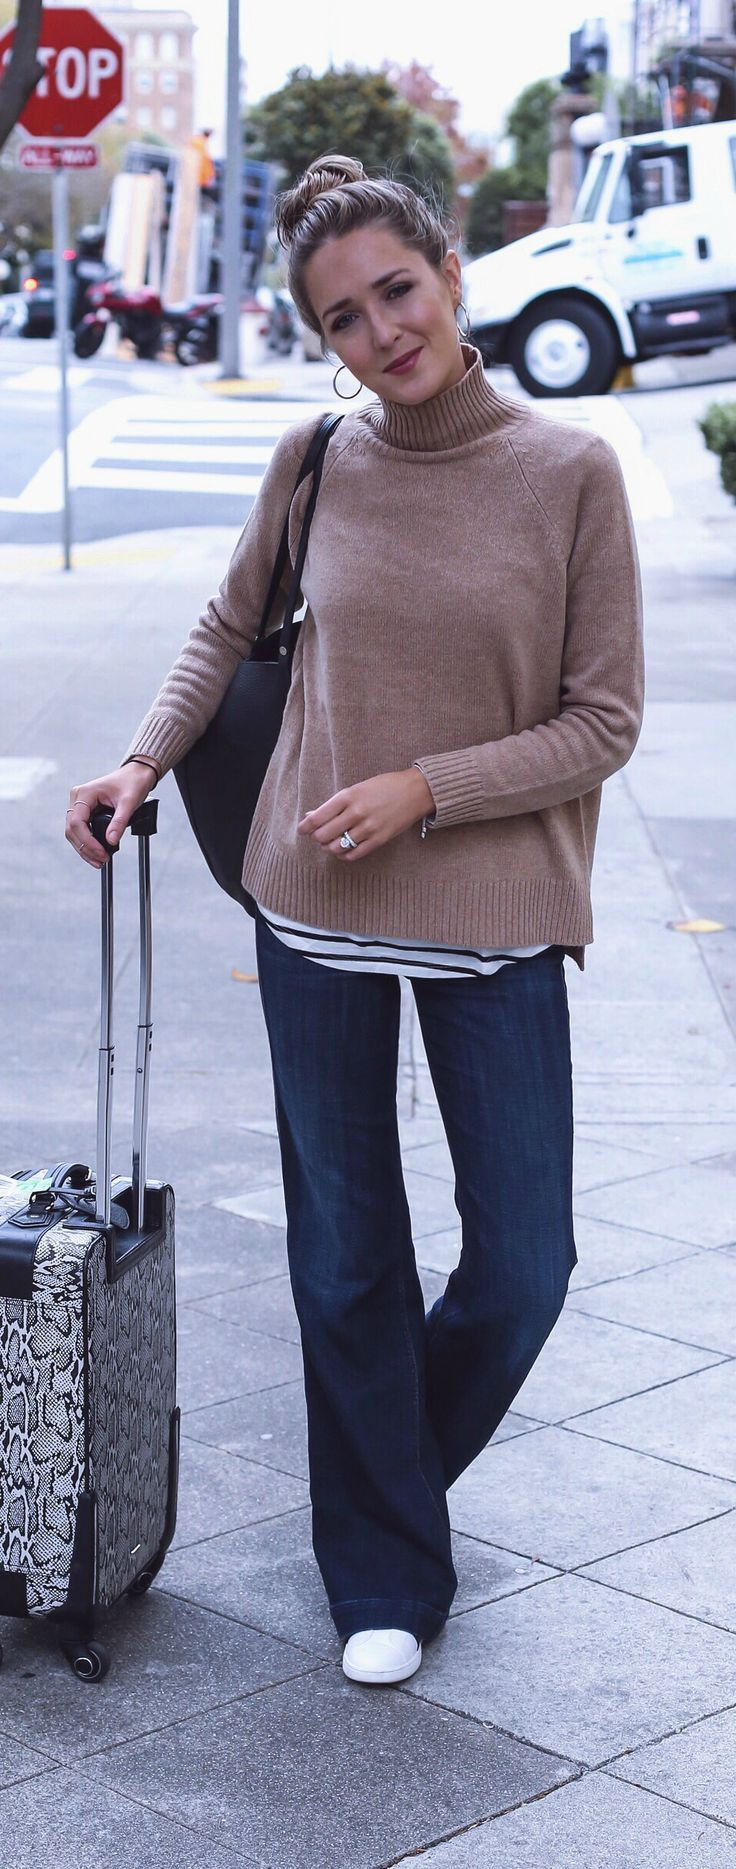 #travelstyle camel turtleneck chunky tunic sweater, layered over black and white striped long t-shirt, wide leg flare jeans, sneakers, hoop earrings